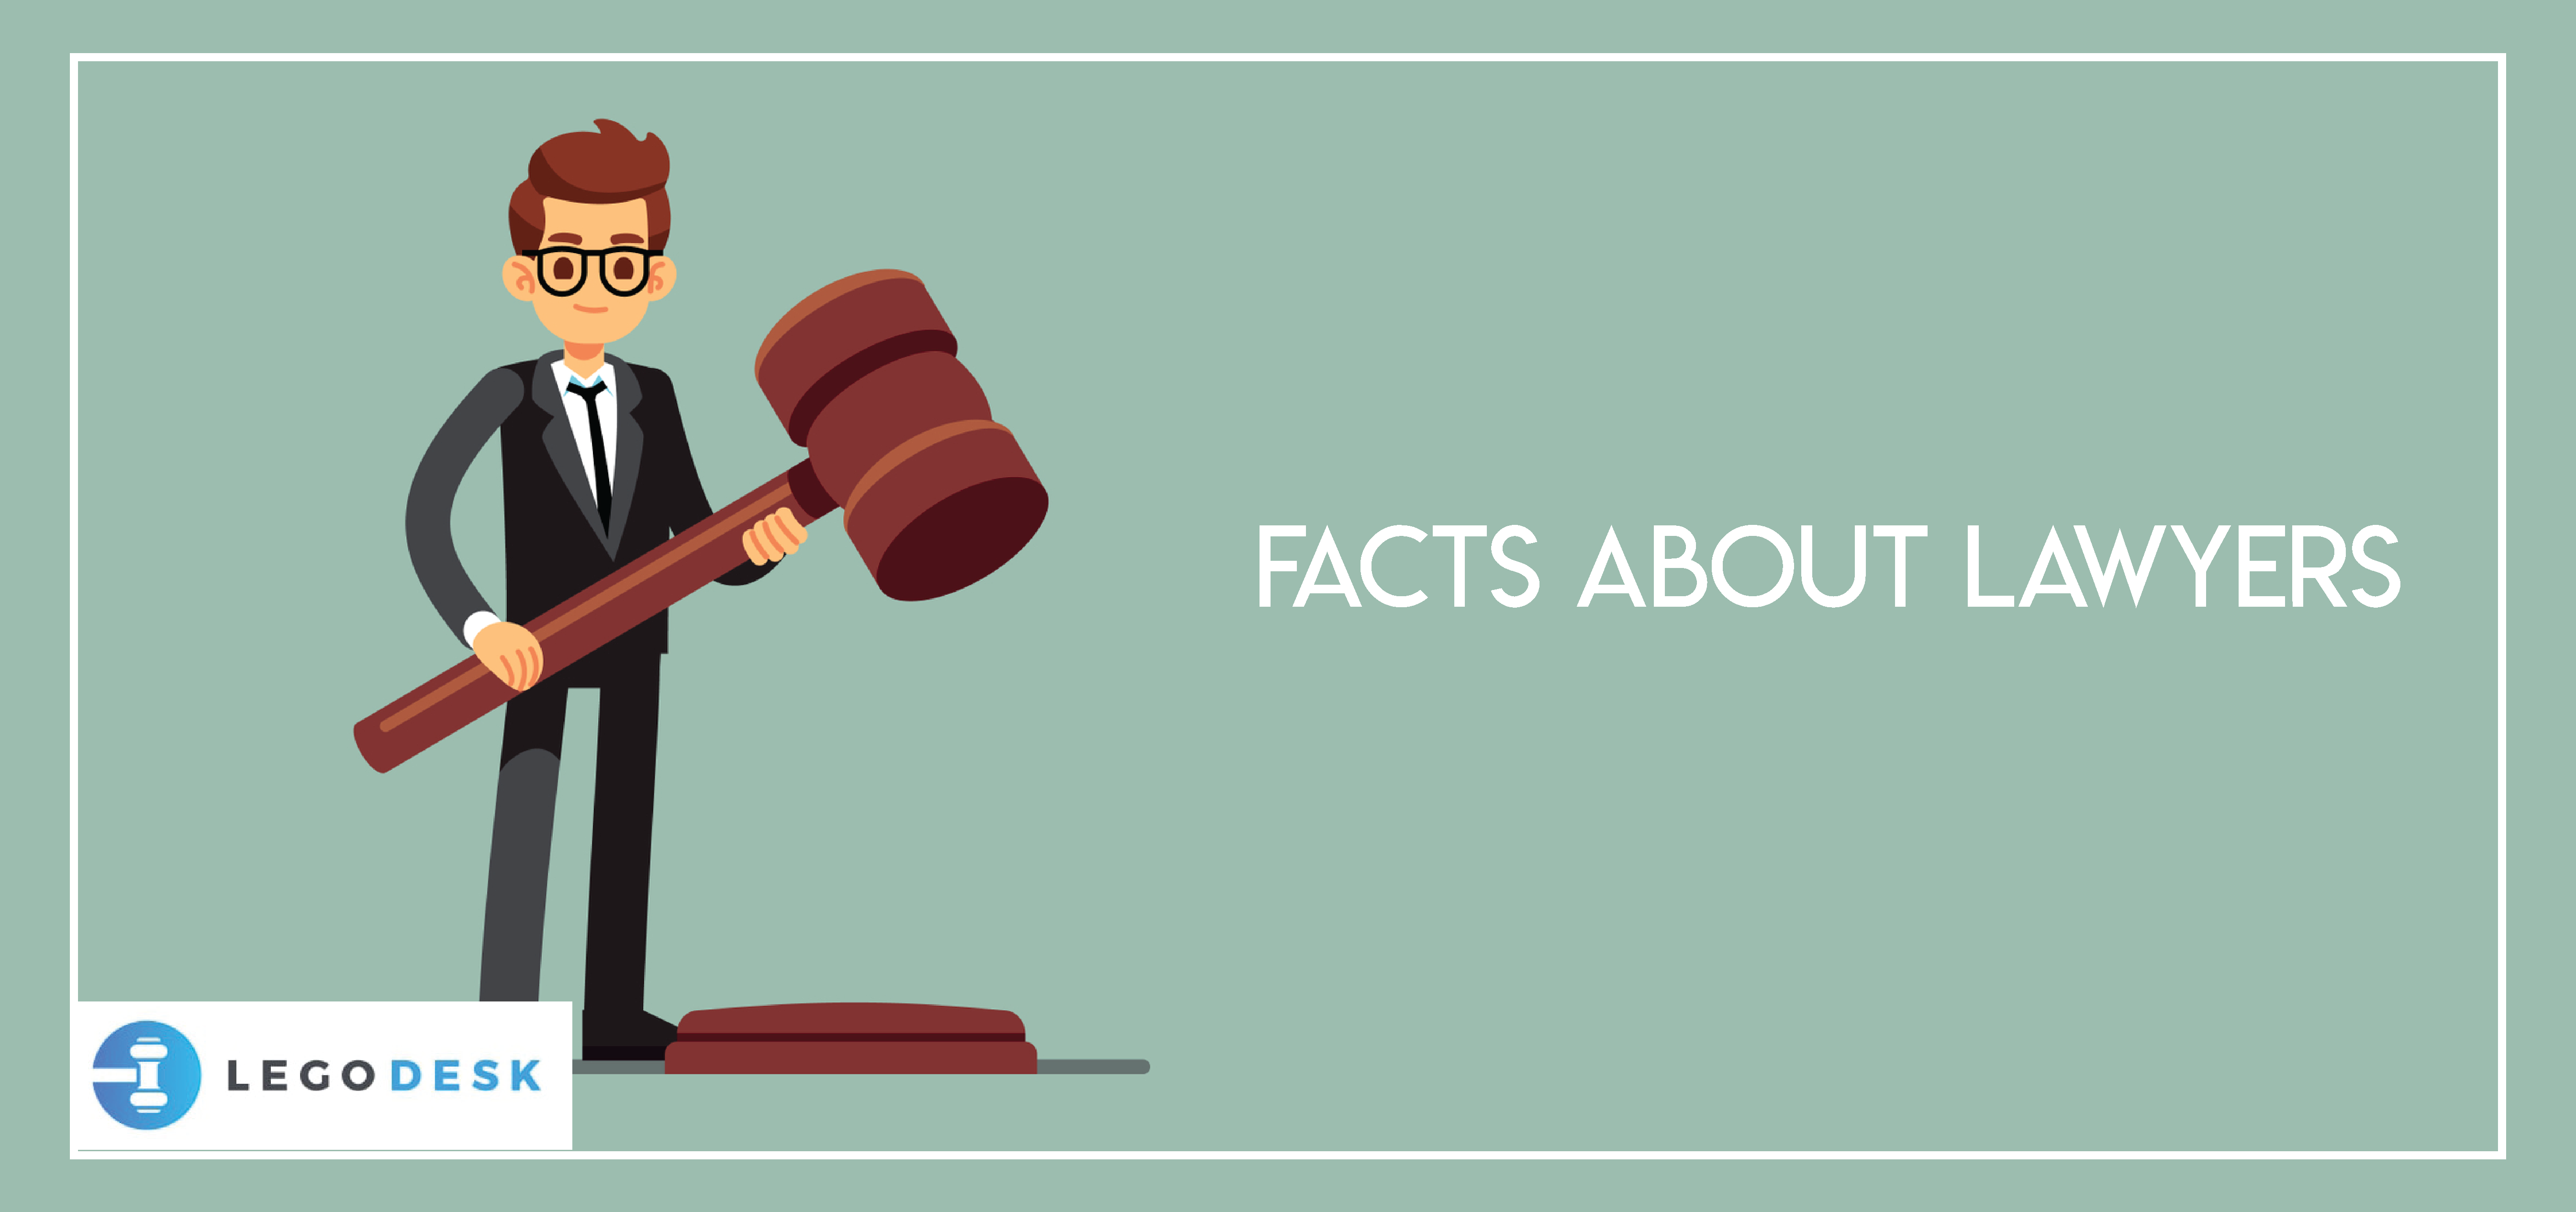 Facts about Lawyers